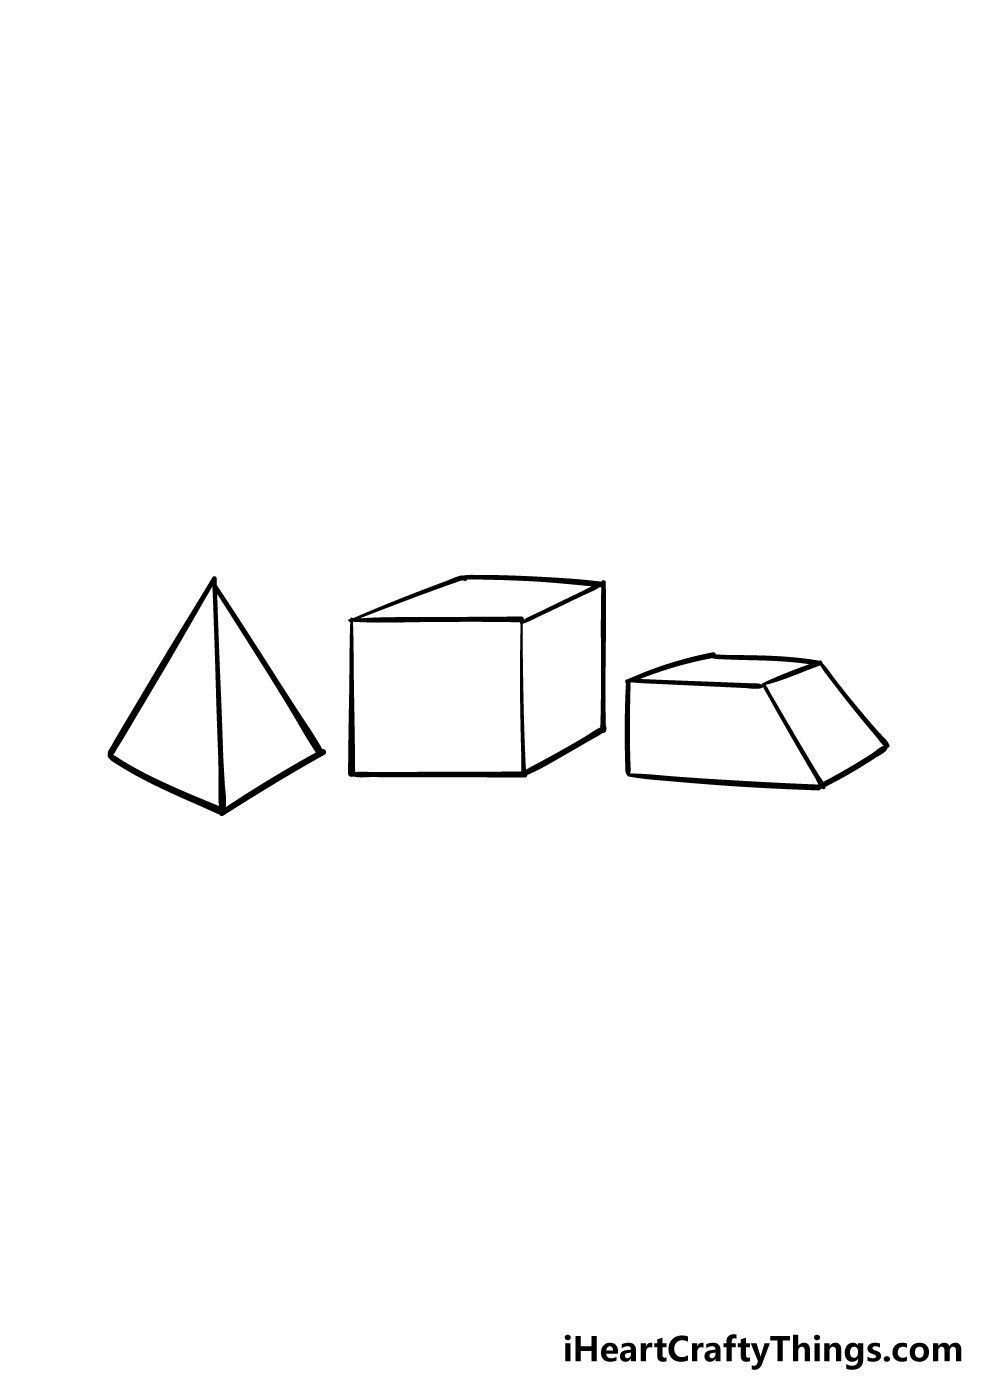 3D shapes drawing step 5